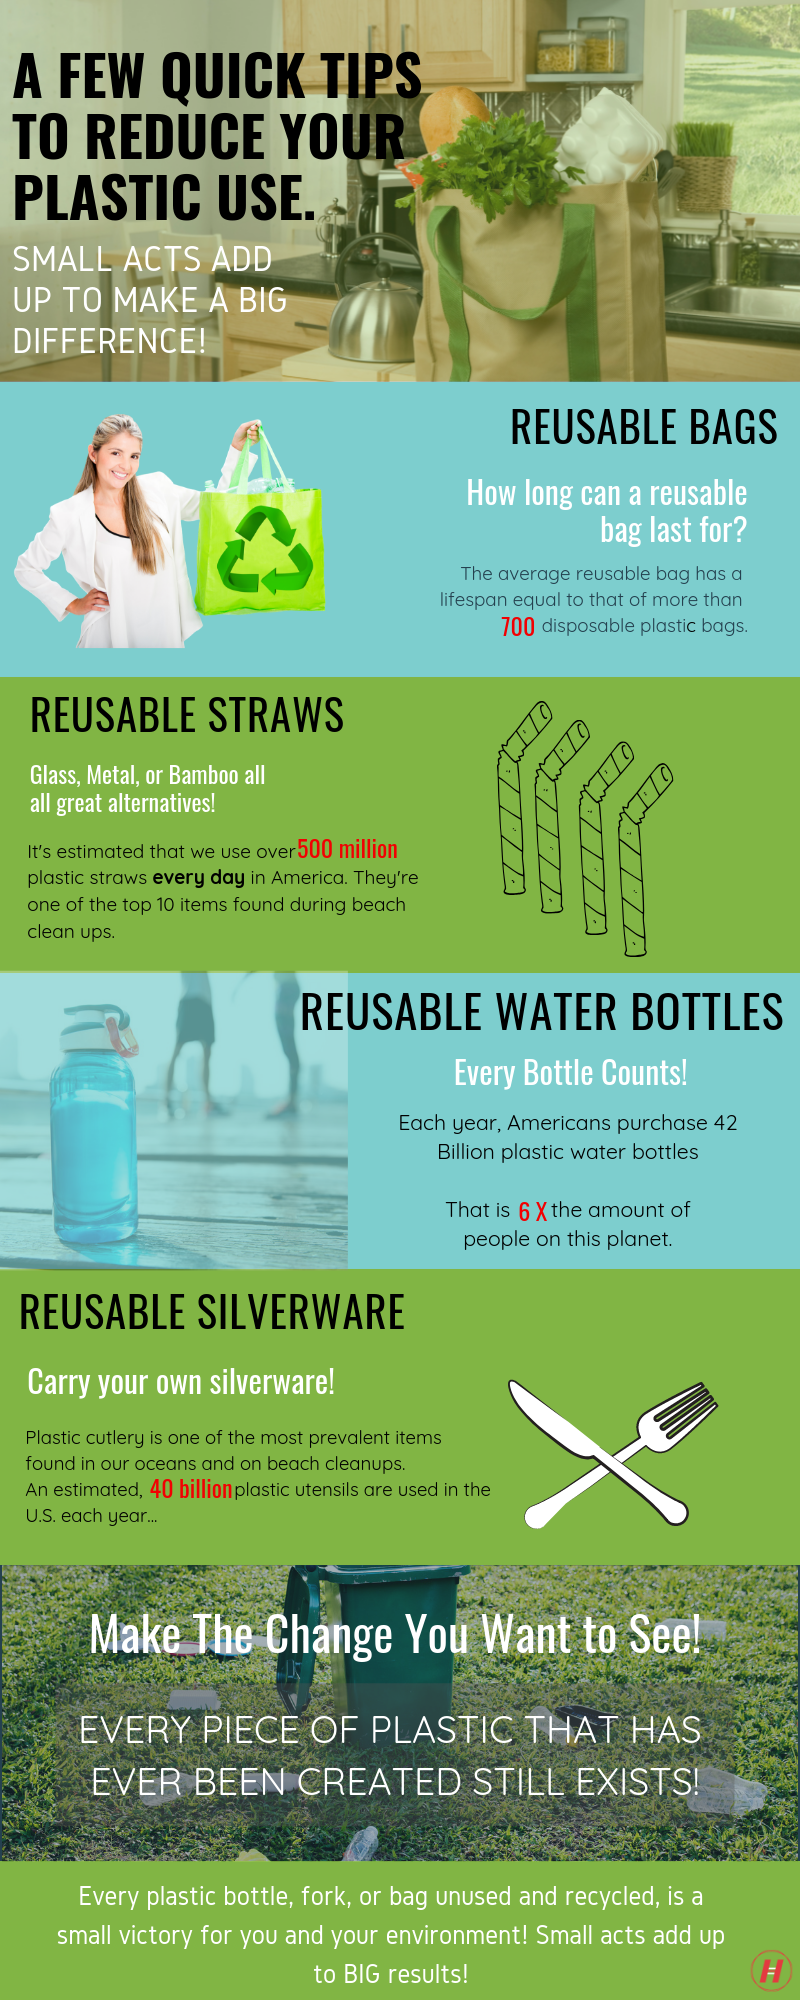 Recycling Infographic Main.png